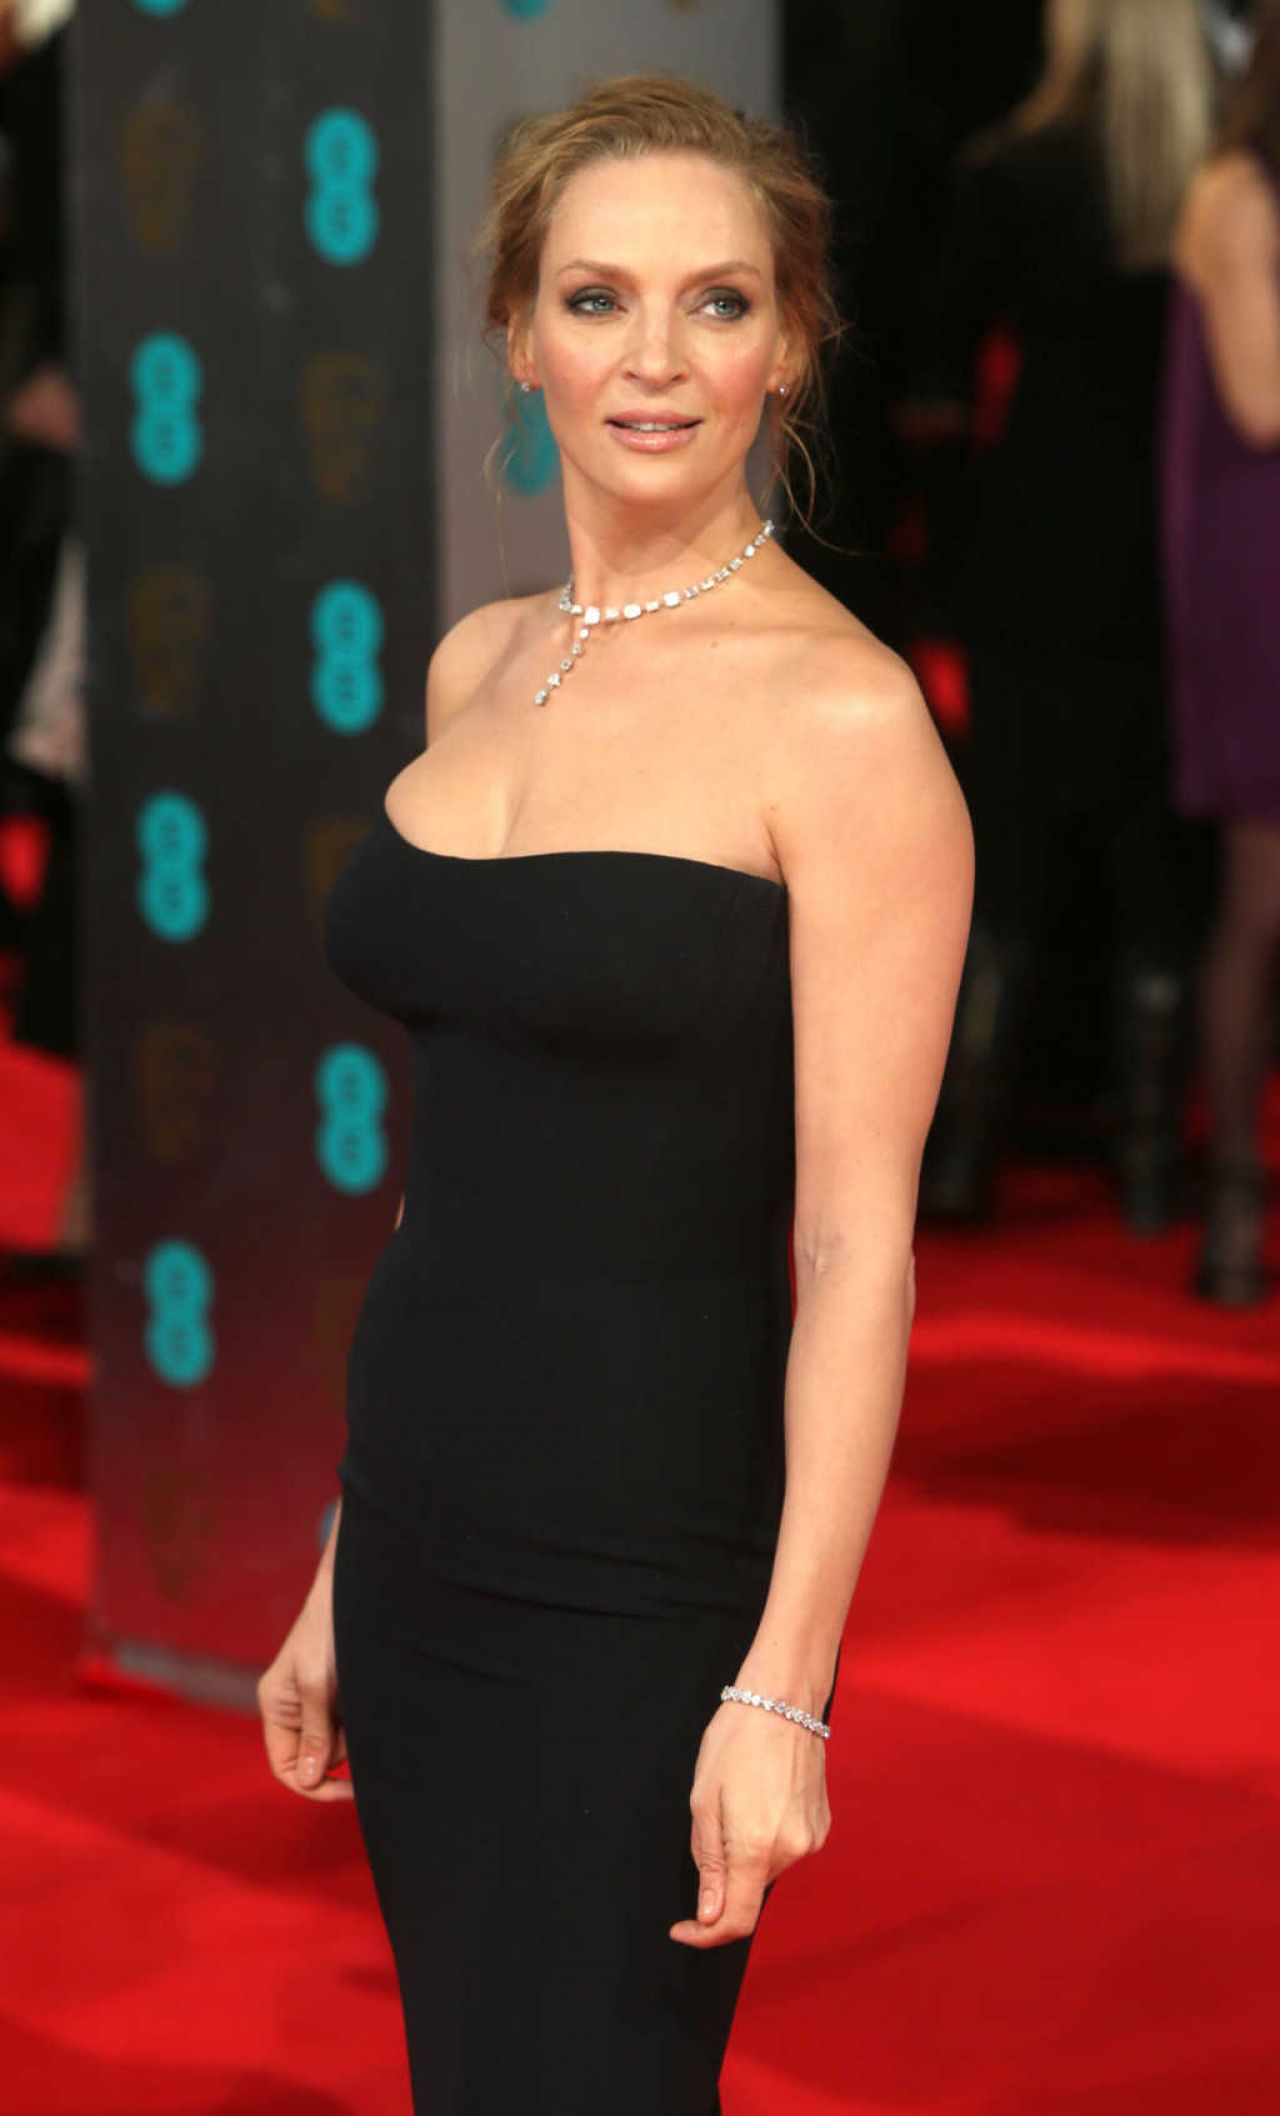 Uma Thurman - 2014 BAFTA Awards in London